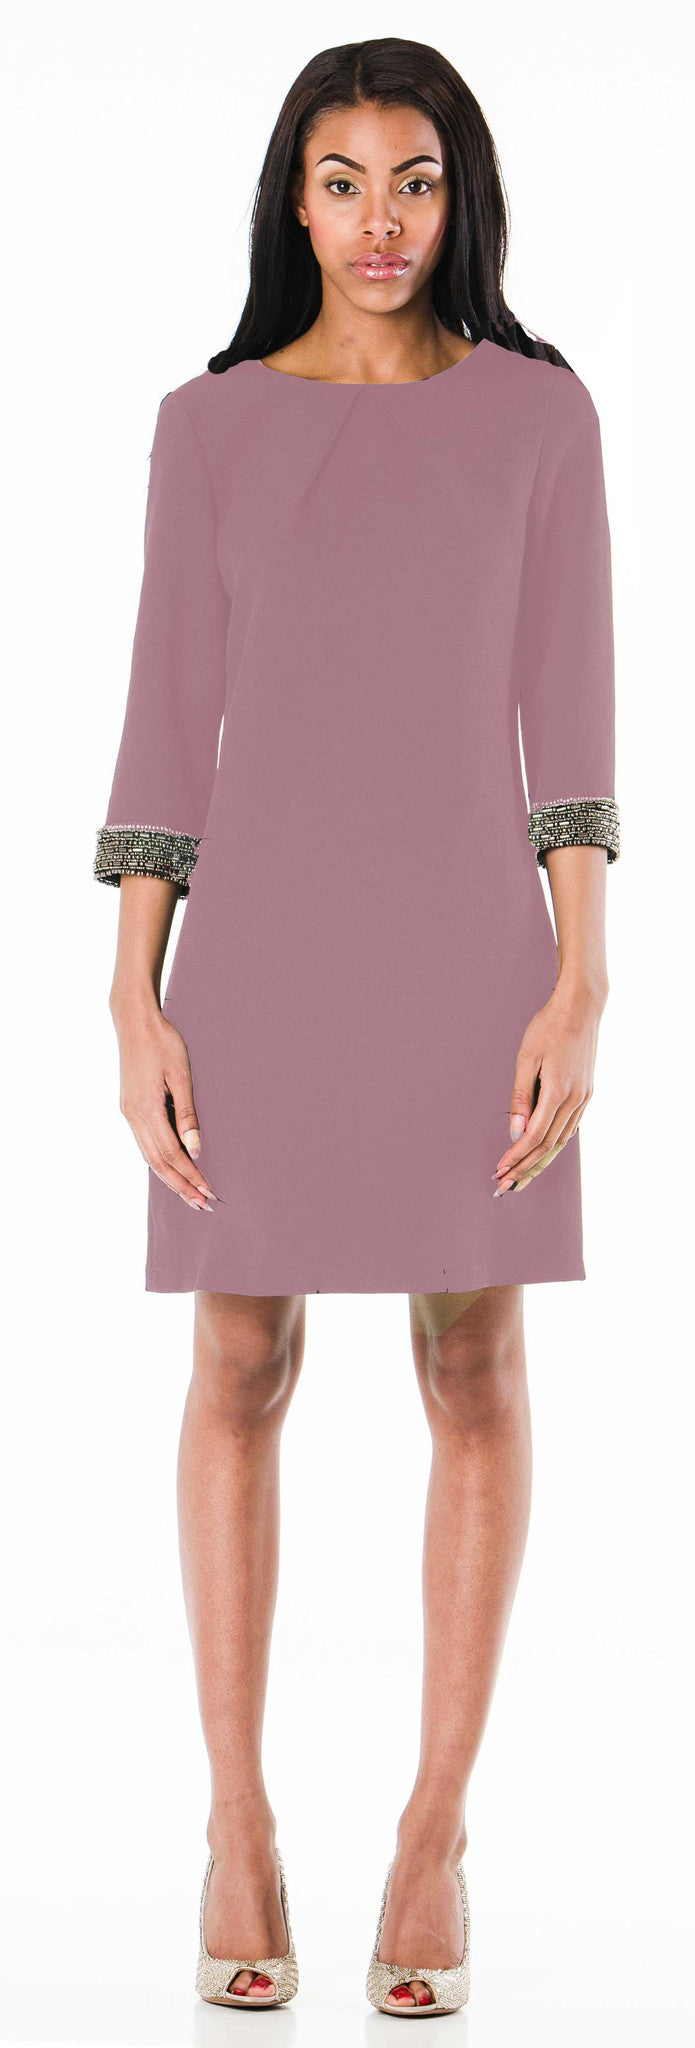 Lafayette Dress/ Blush Pink